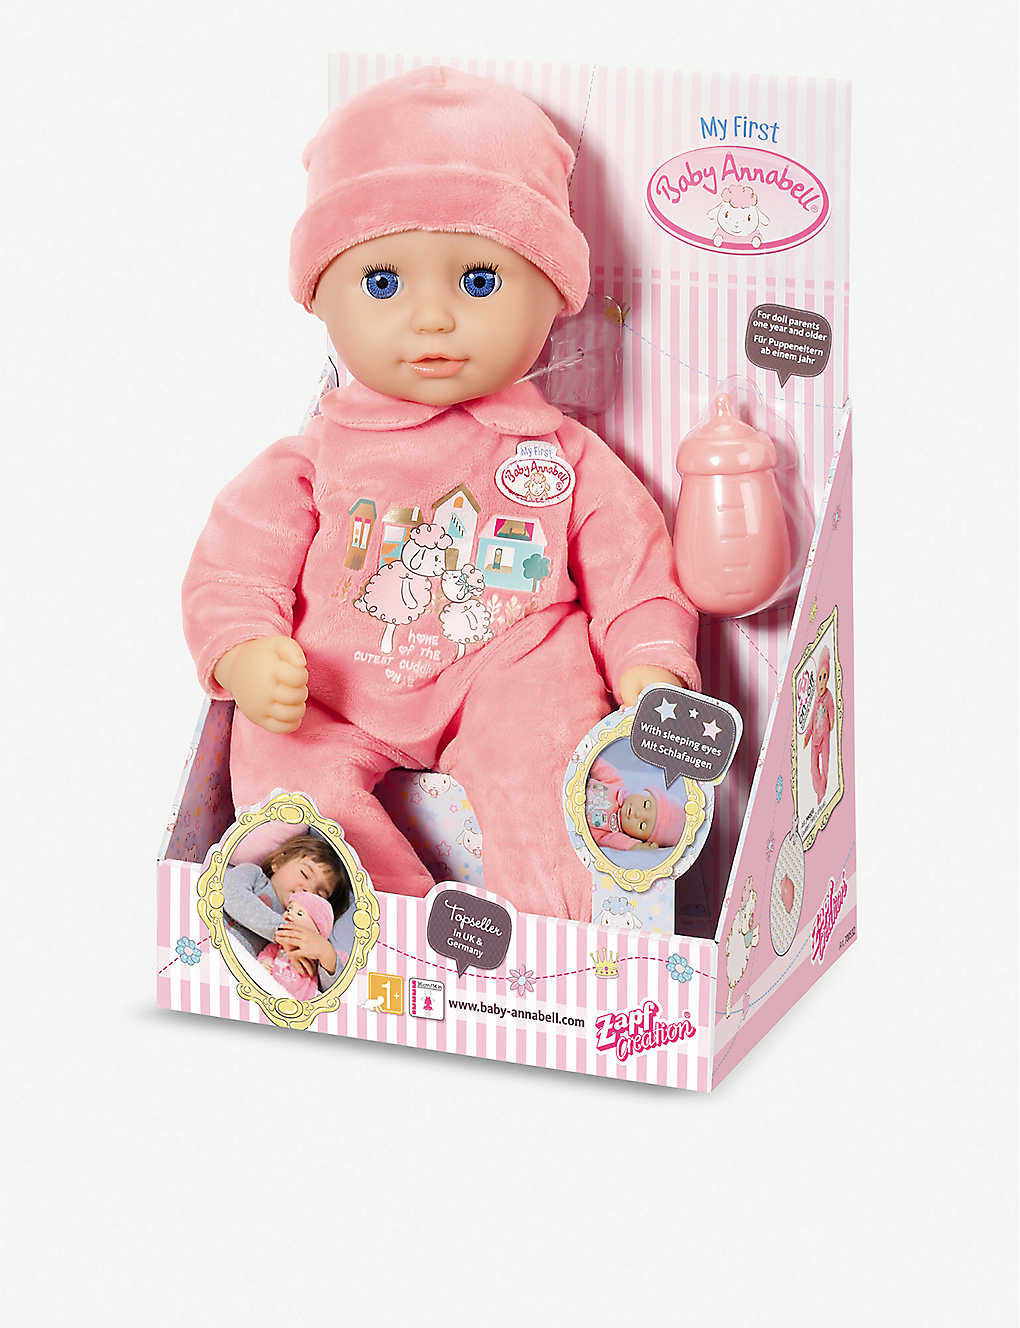 BABY ANNABELL - My First Baby Annabell sleeping eyes doll ...